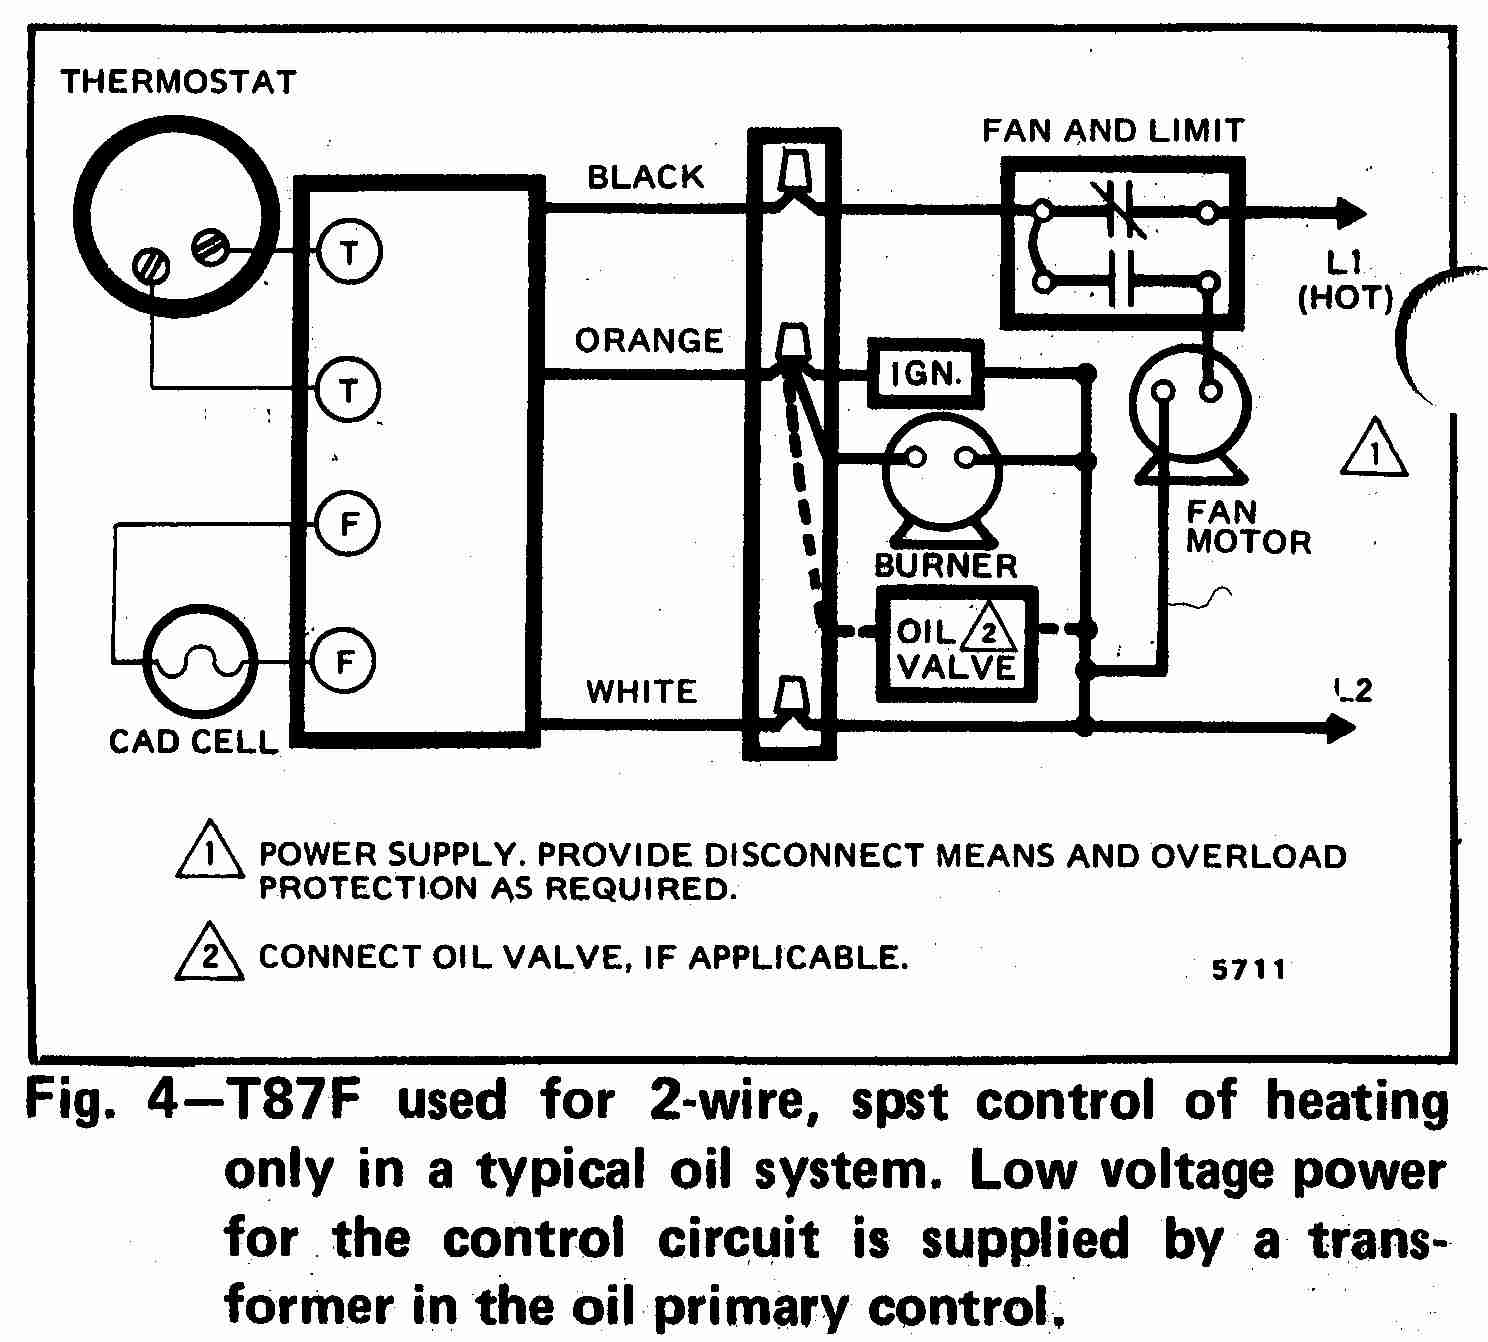 TT_T87F_0002_2W_DJF hvac wiring diagrams on hvac download wirning diagrams Heat Only Thermostat Wiring Diagram at panicattacktreatment.co